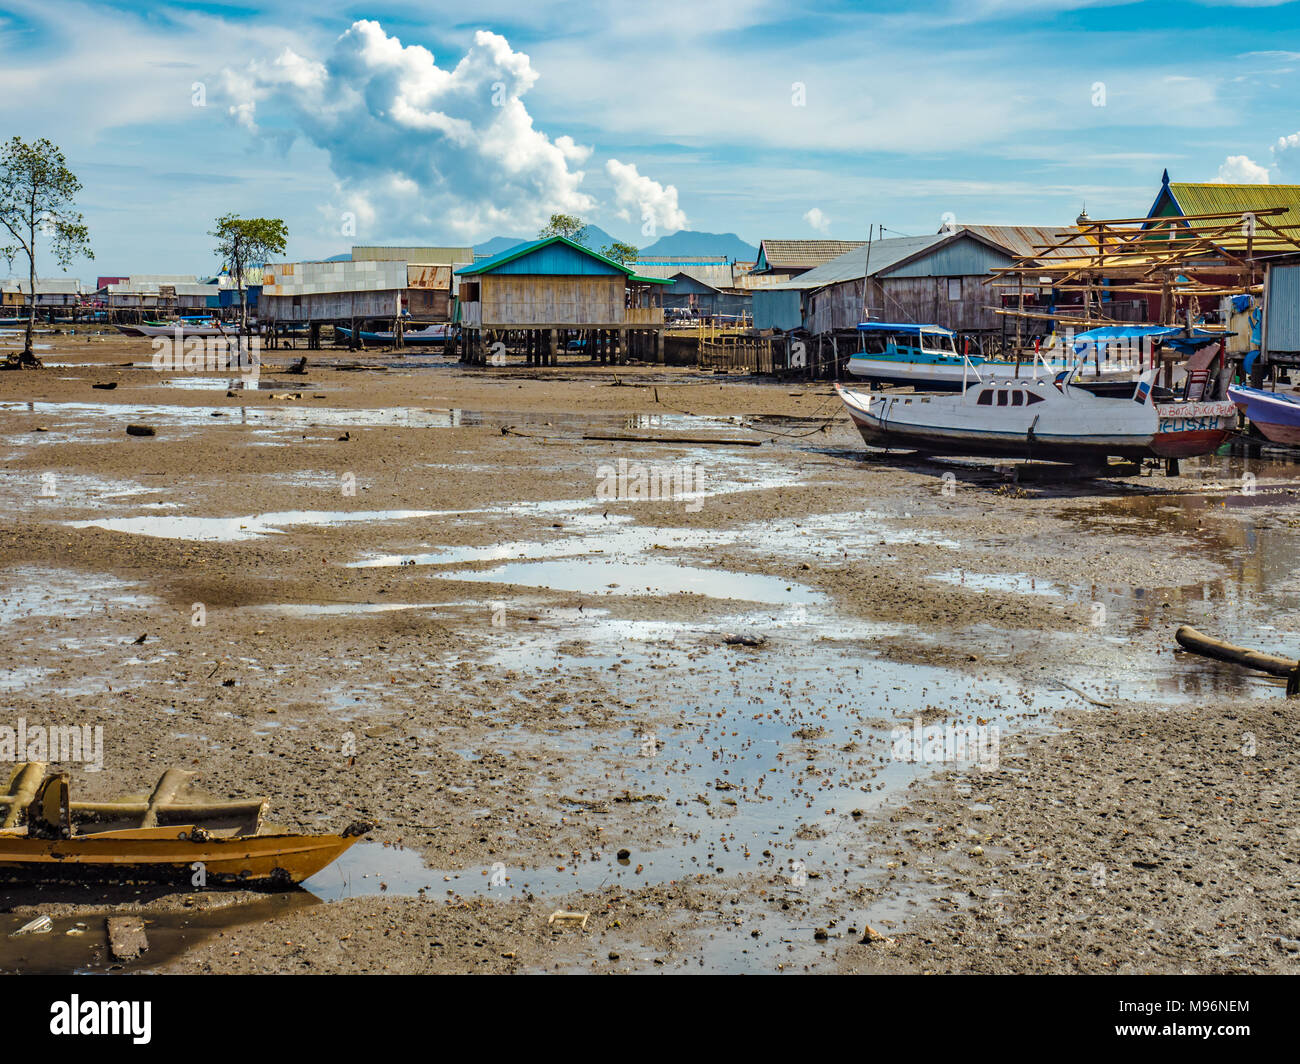 Village of Sea Gypsies during low tide. Asian traditional wooden houses on stilts. Floating houses village in Maumere, Flores Island, Indonesia Stock Photo